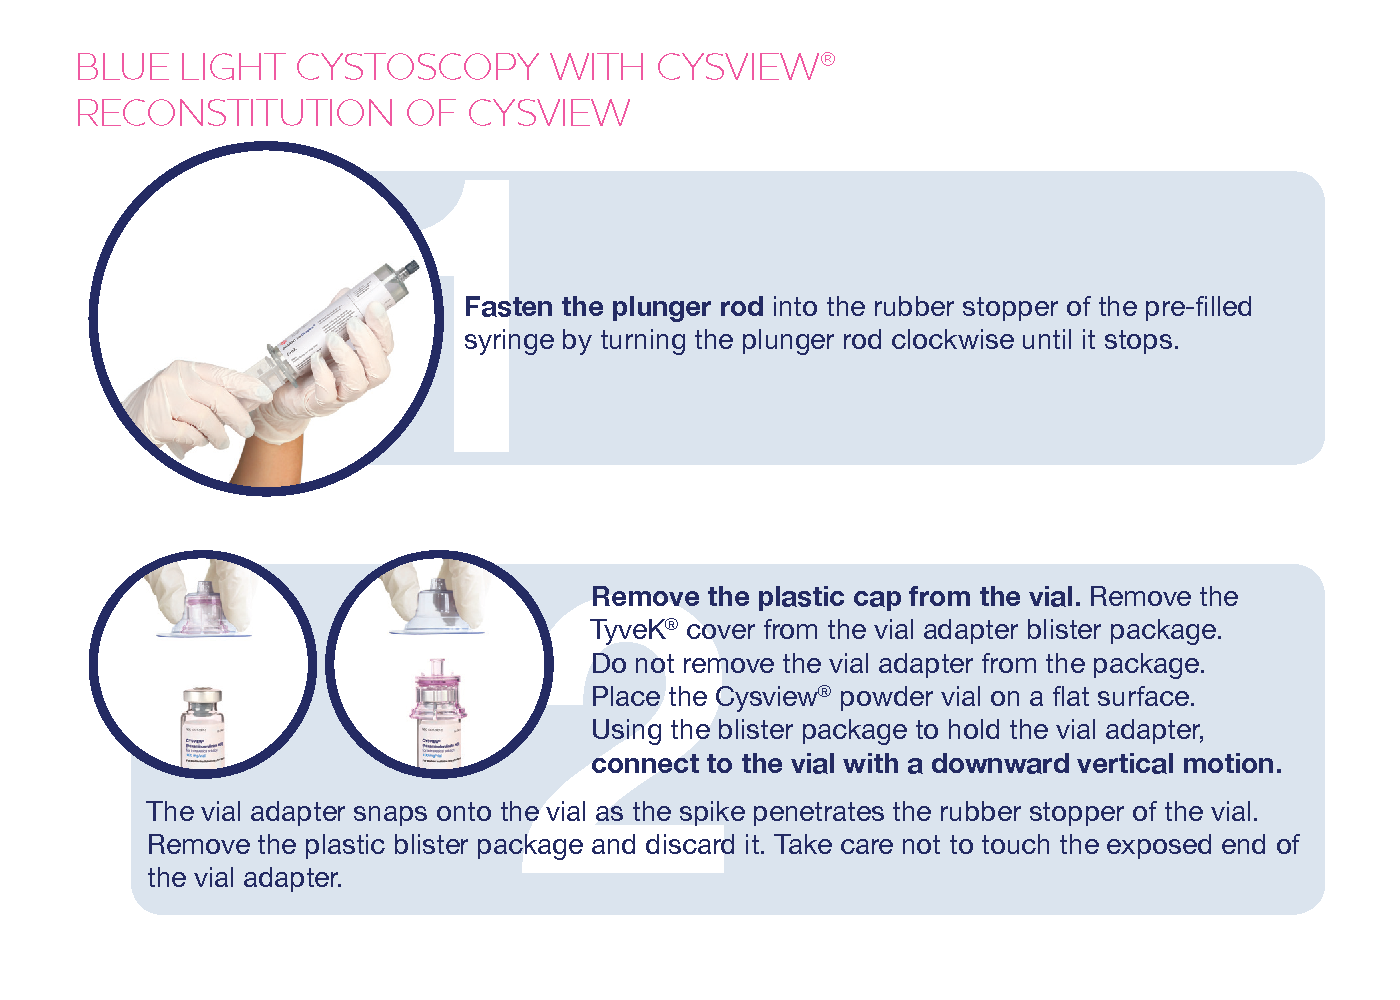 Cysview for bladder cancer cystoscopy procedure reconstitution brochure